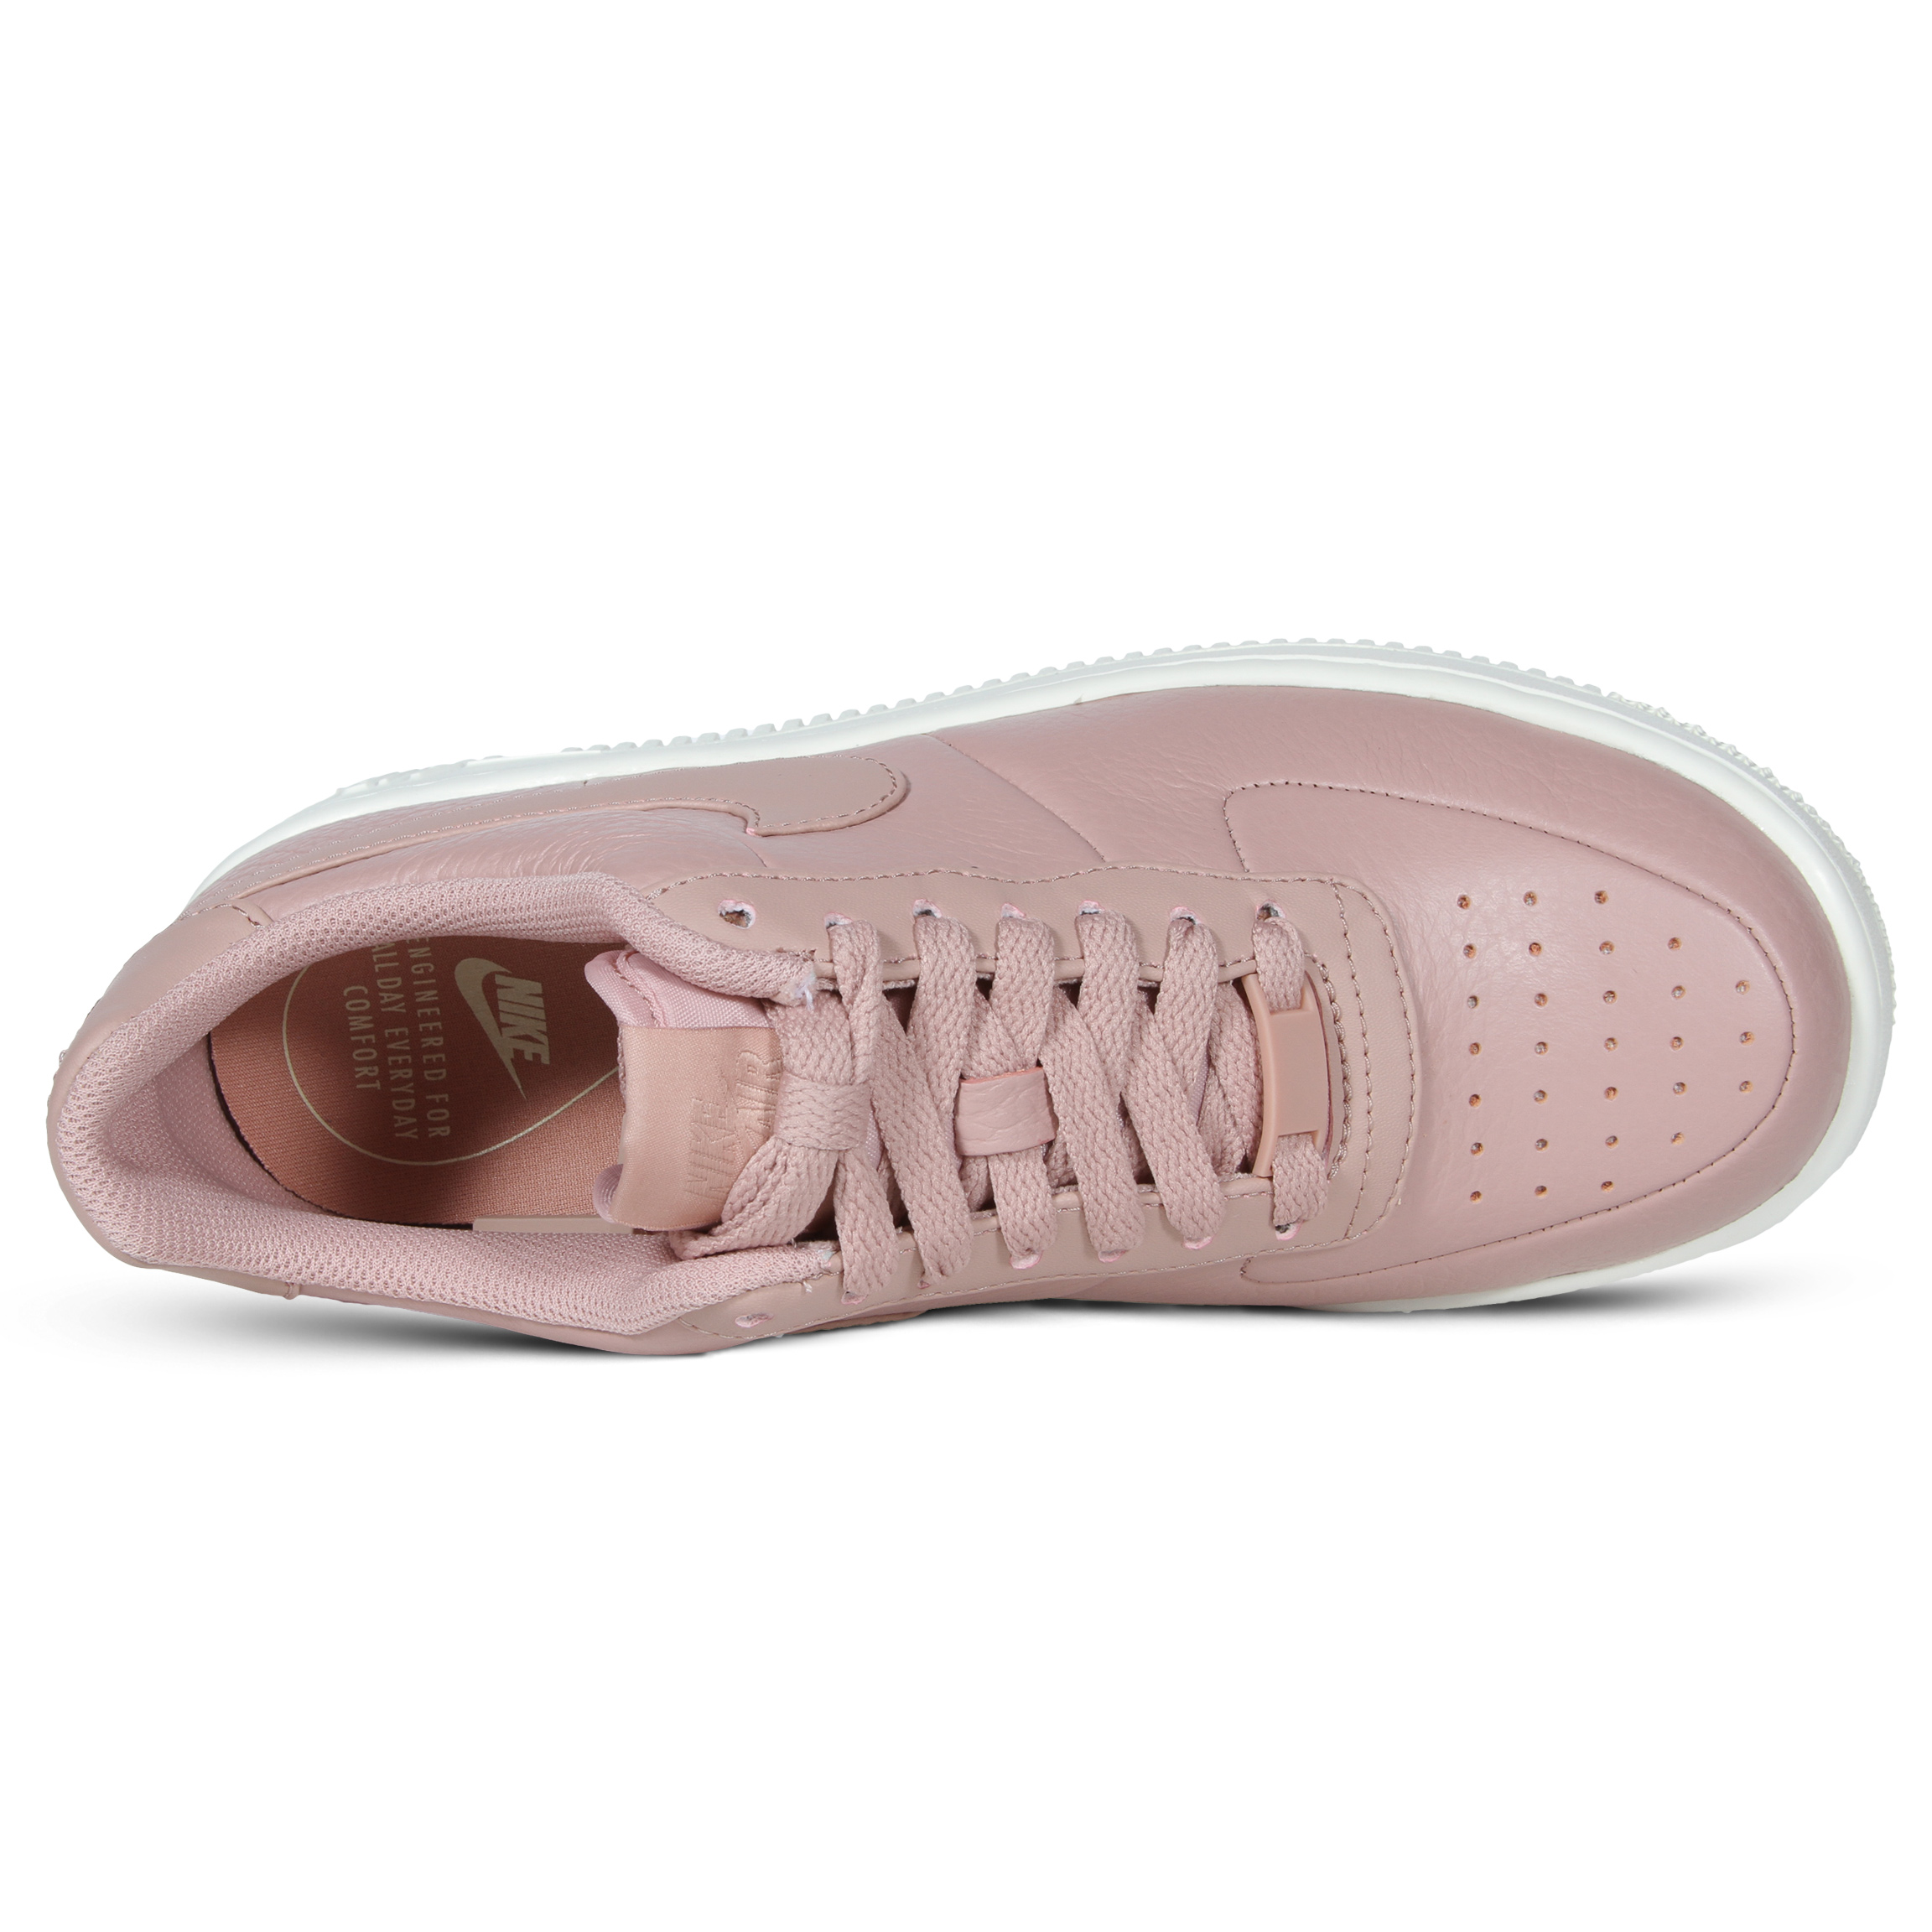 new arrival e708a 27ad1 ... Women s Nike Air Force 1 Upstep Basketball Shoes 917588-601 917588-601  917588- ...